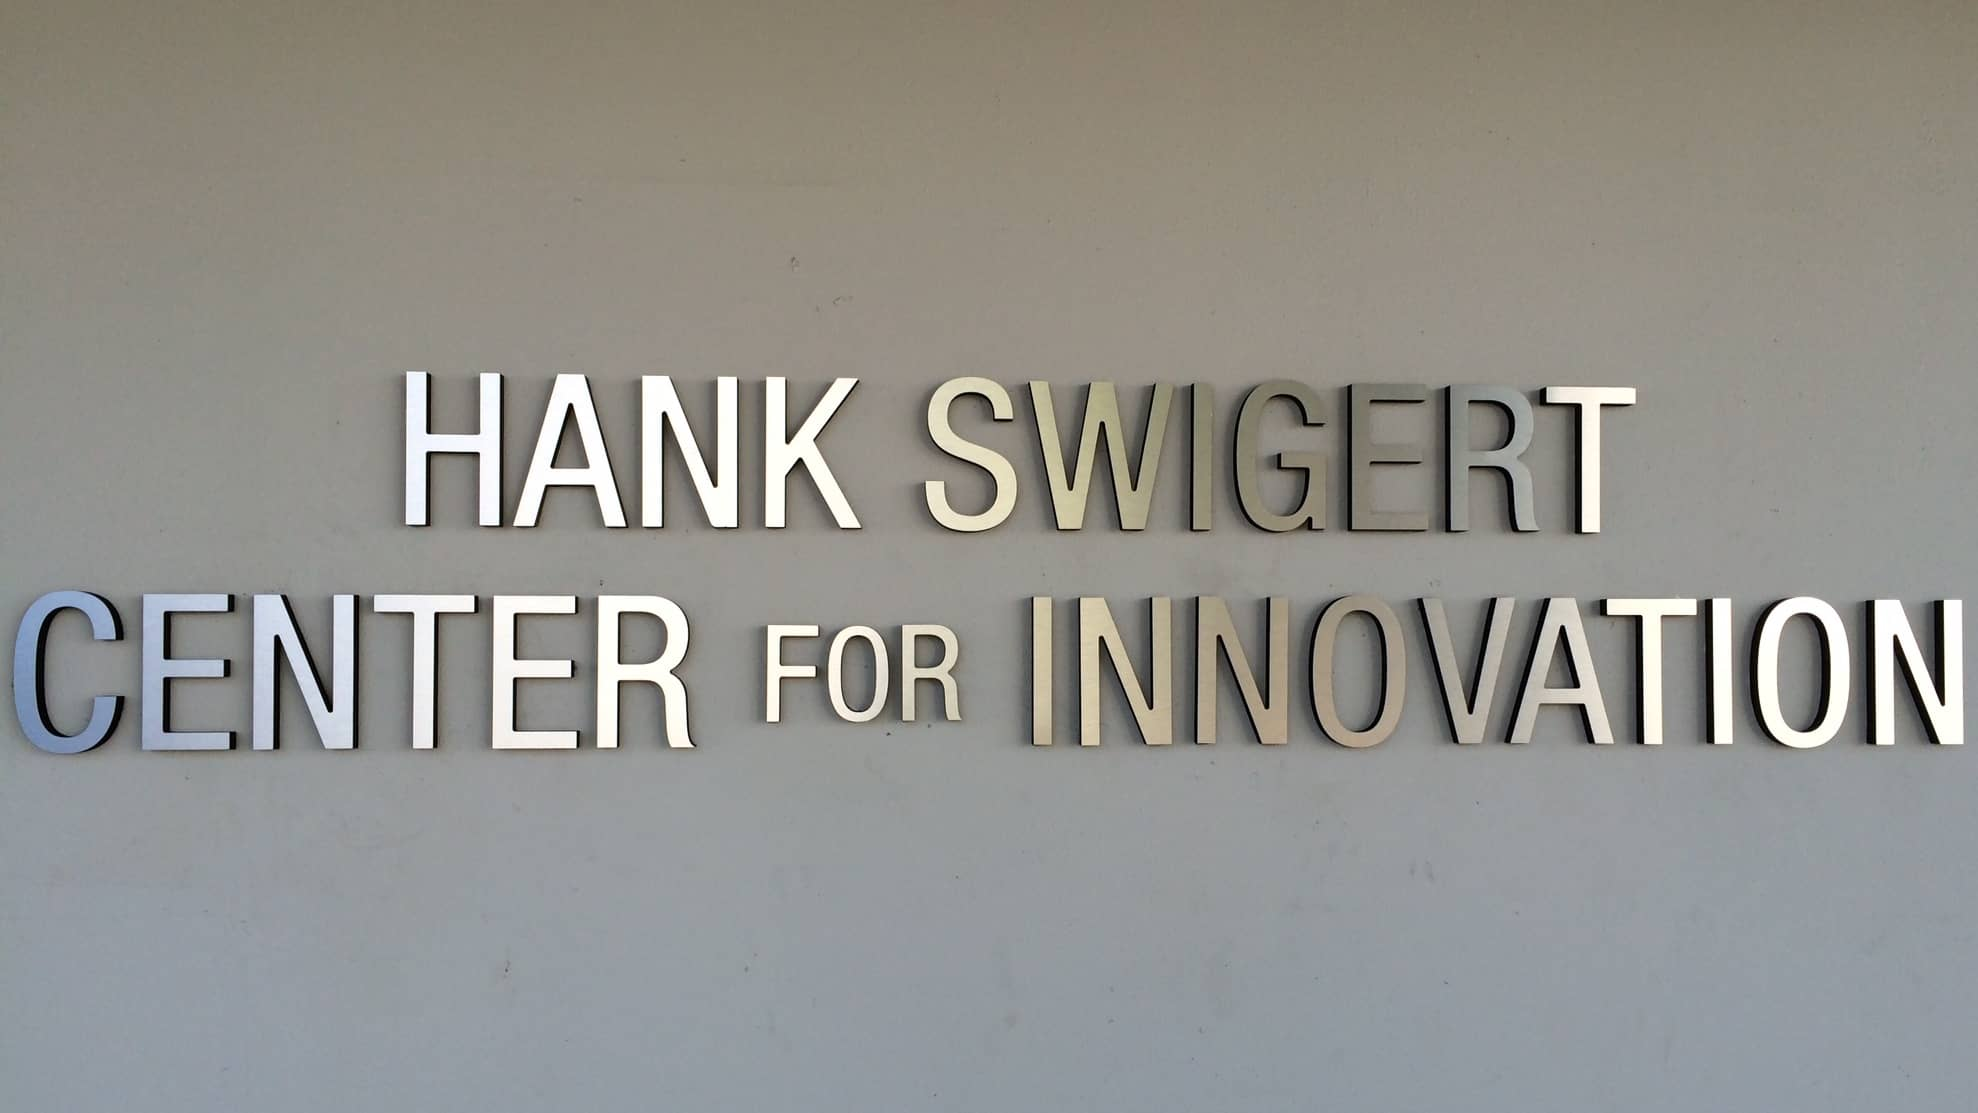 swigert dimensional building sign